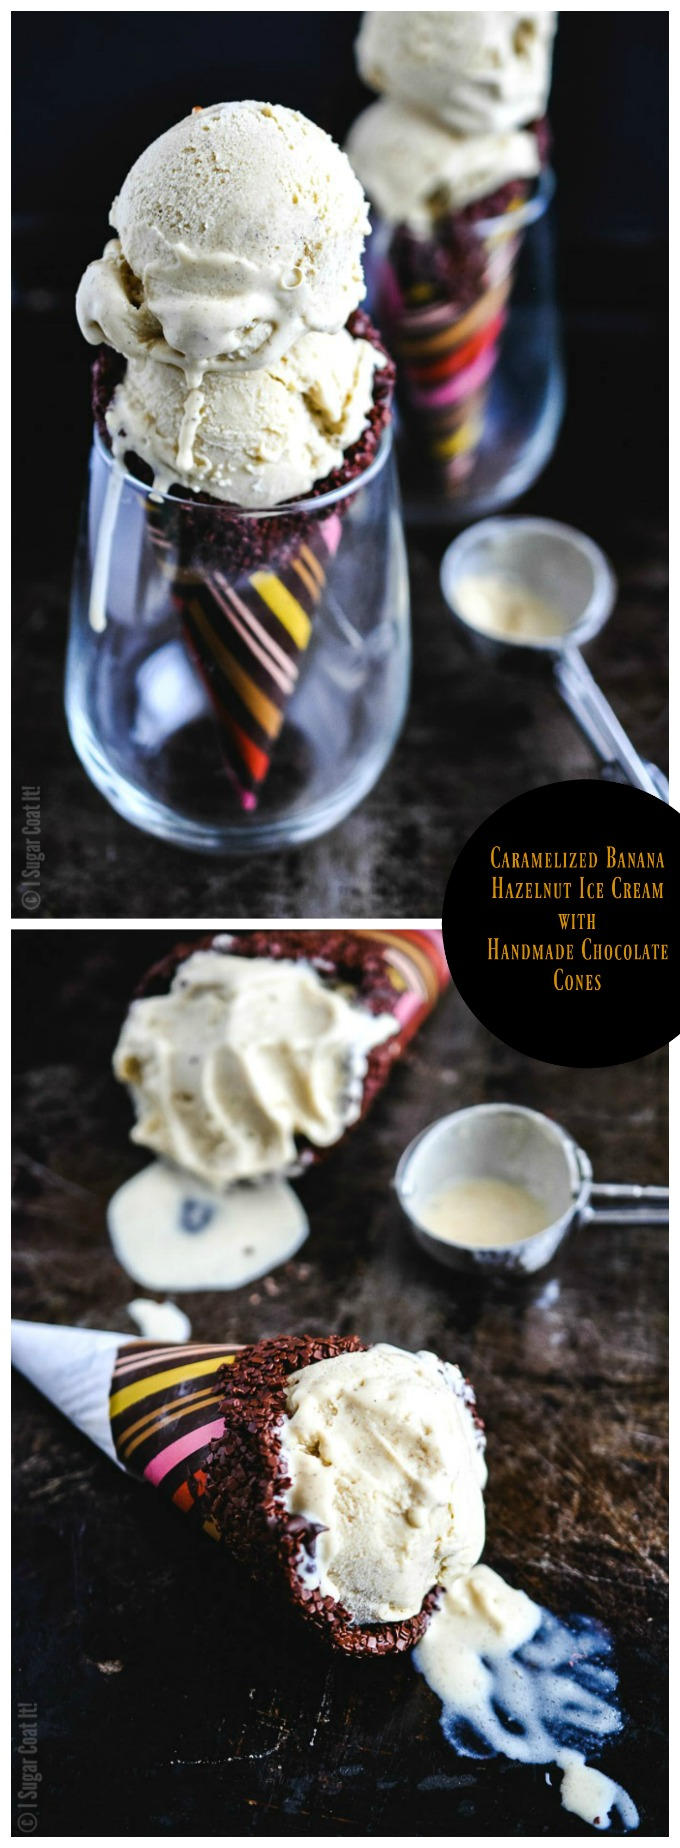 Rich, creamy, banana ice cream with roasted hazelnuts, stuffed in handmade chocolate cones make these Caramelized Banana Hazelnut Ice Cream Chocolate Cones a summer must!